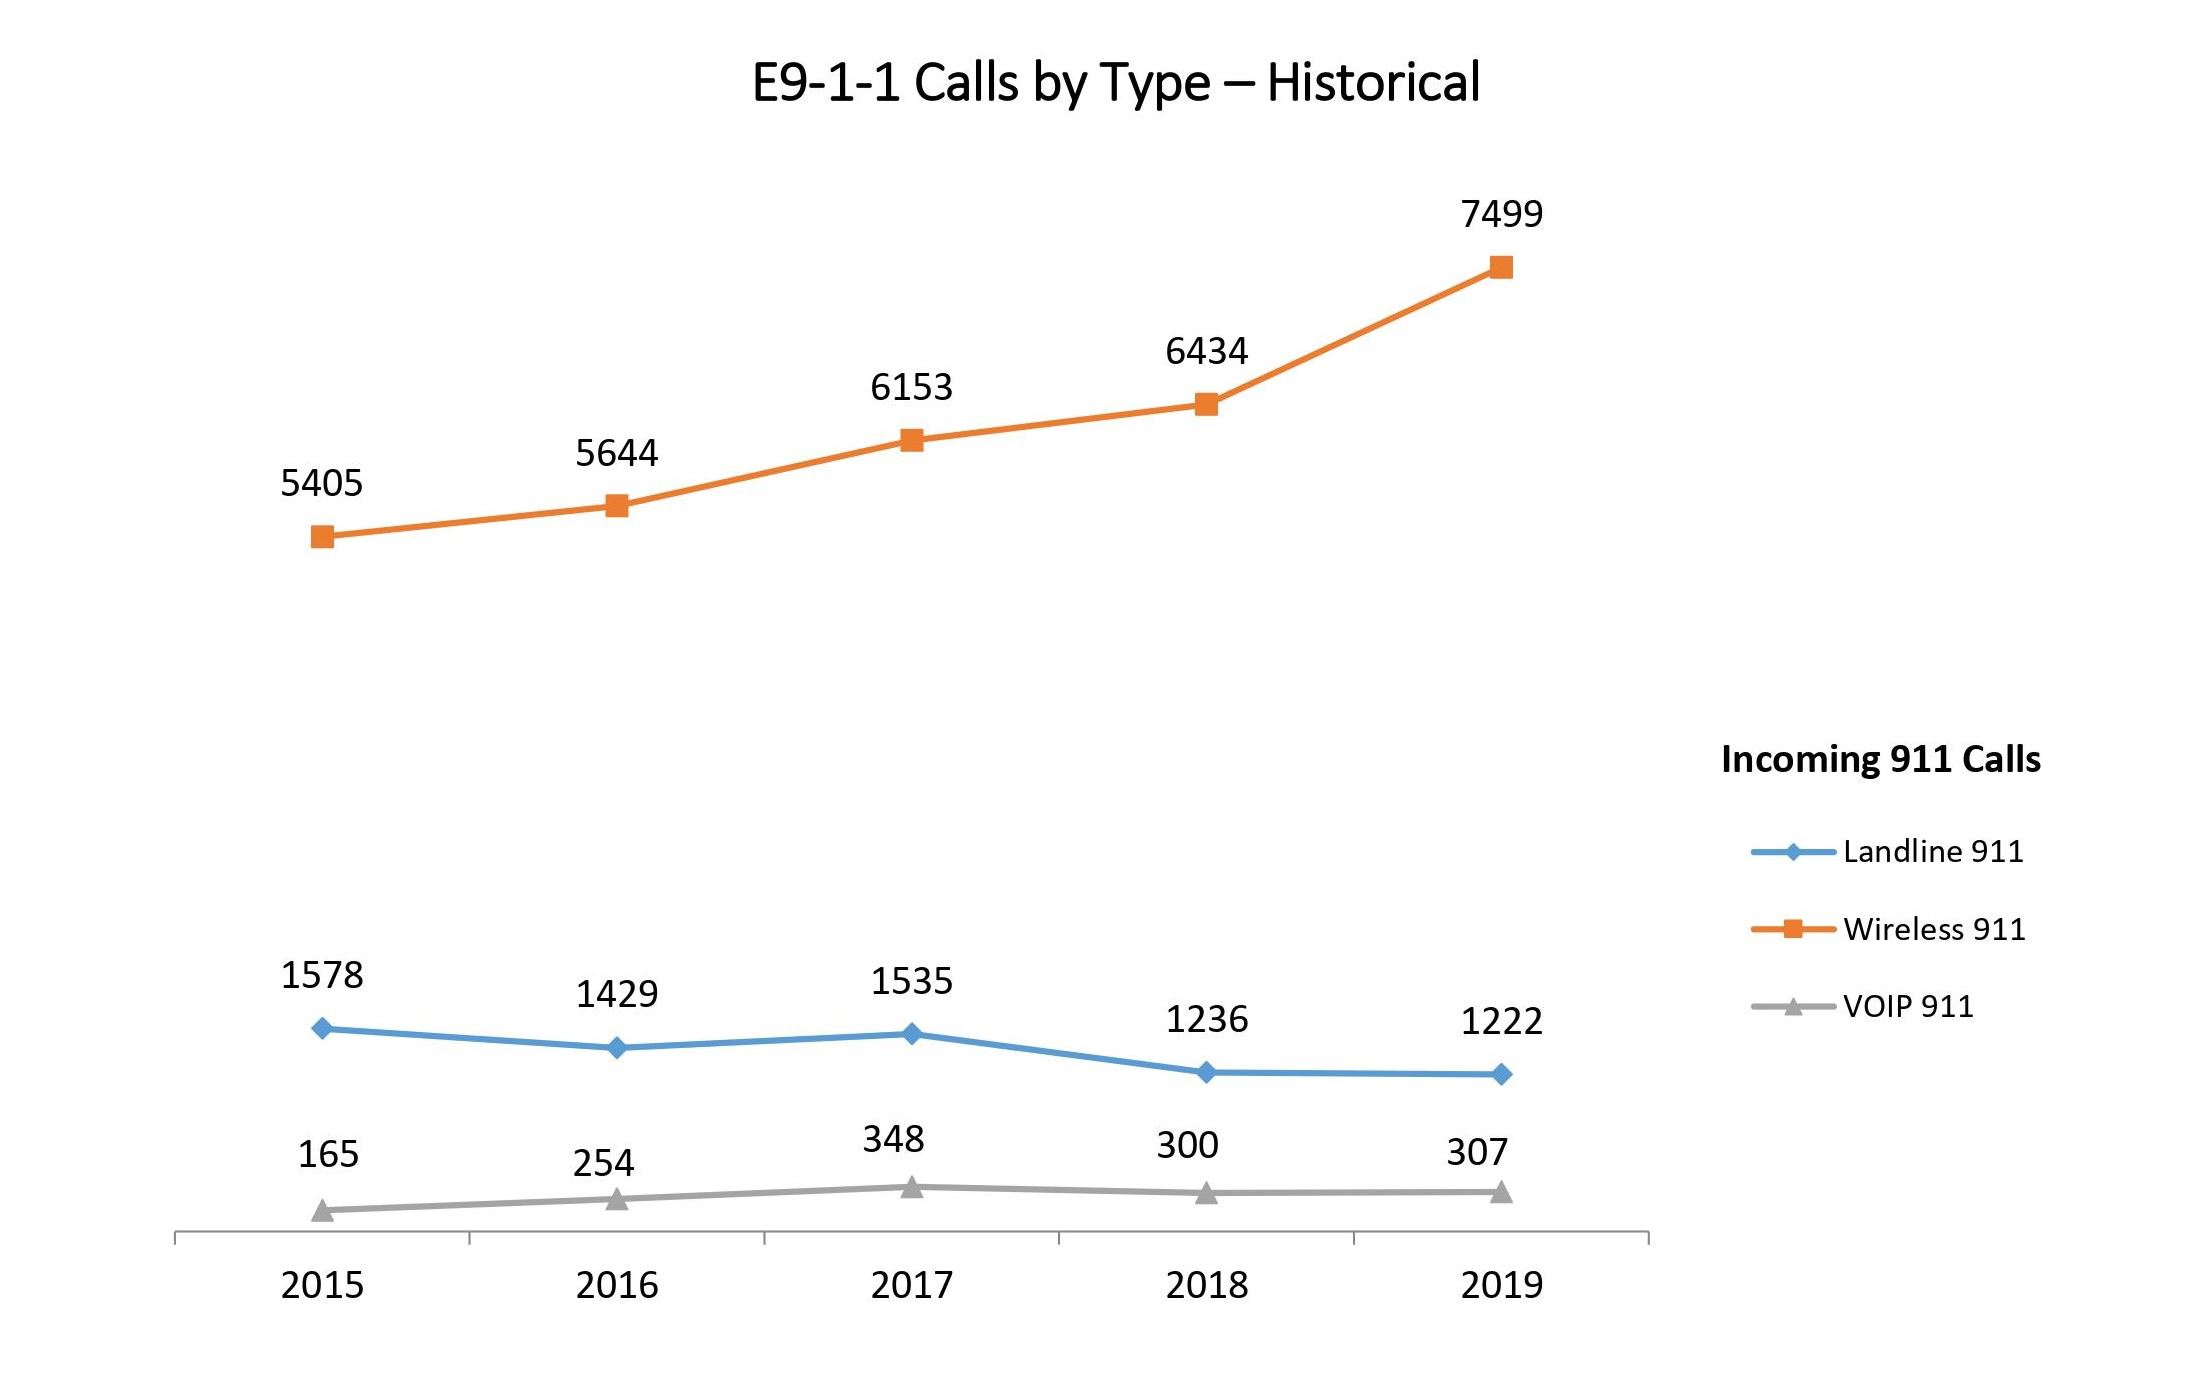 E911 Calls by Type - Historical